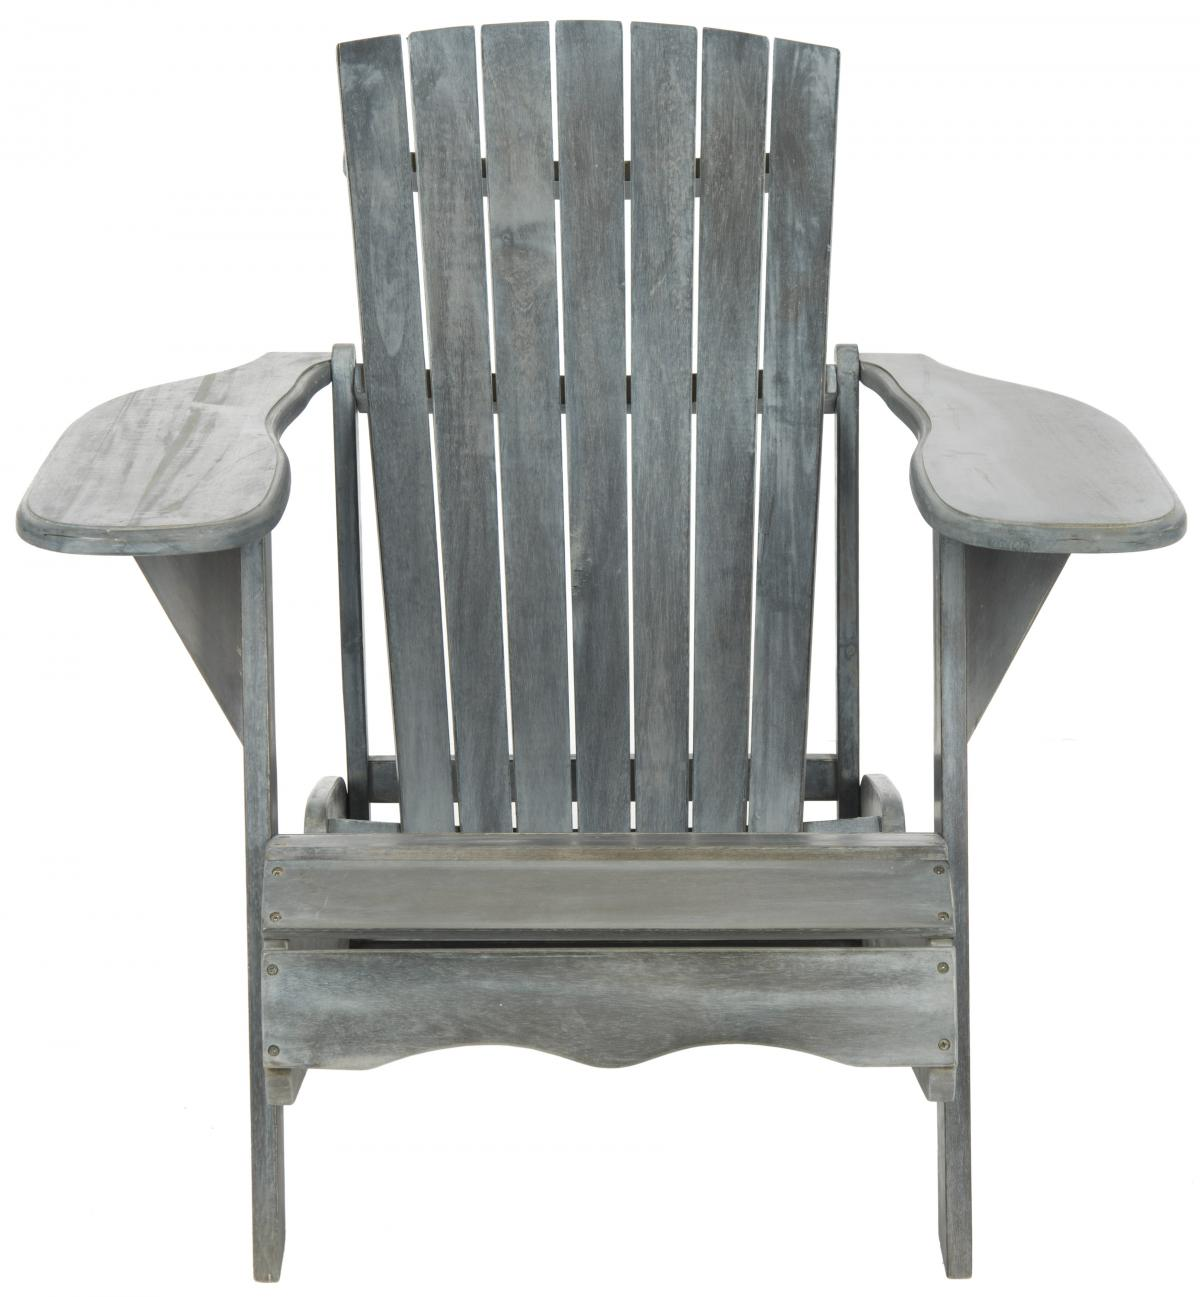 gray adirondack chairs resin chaise lounge pat6700a furniture by safavieh